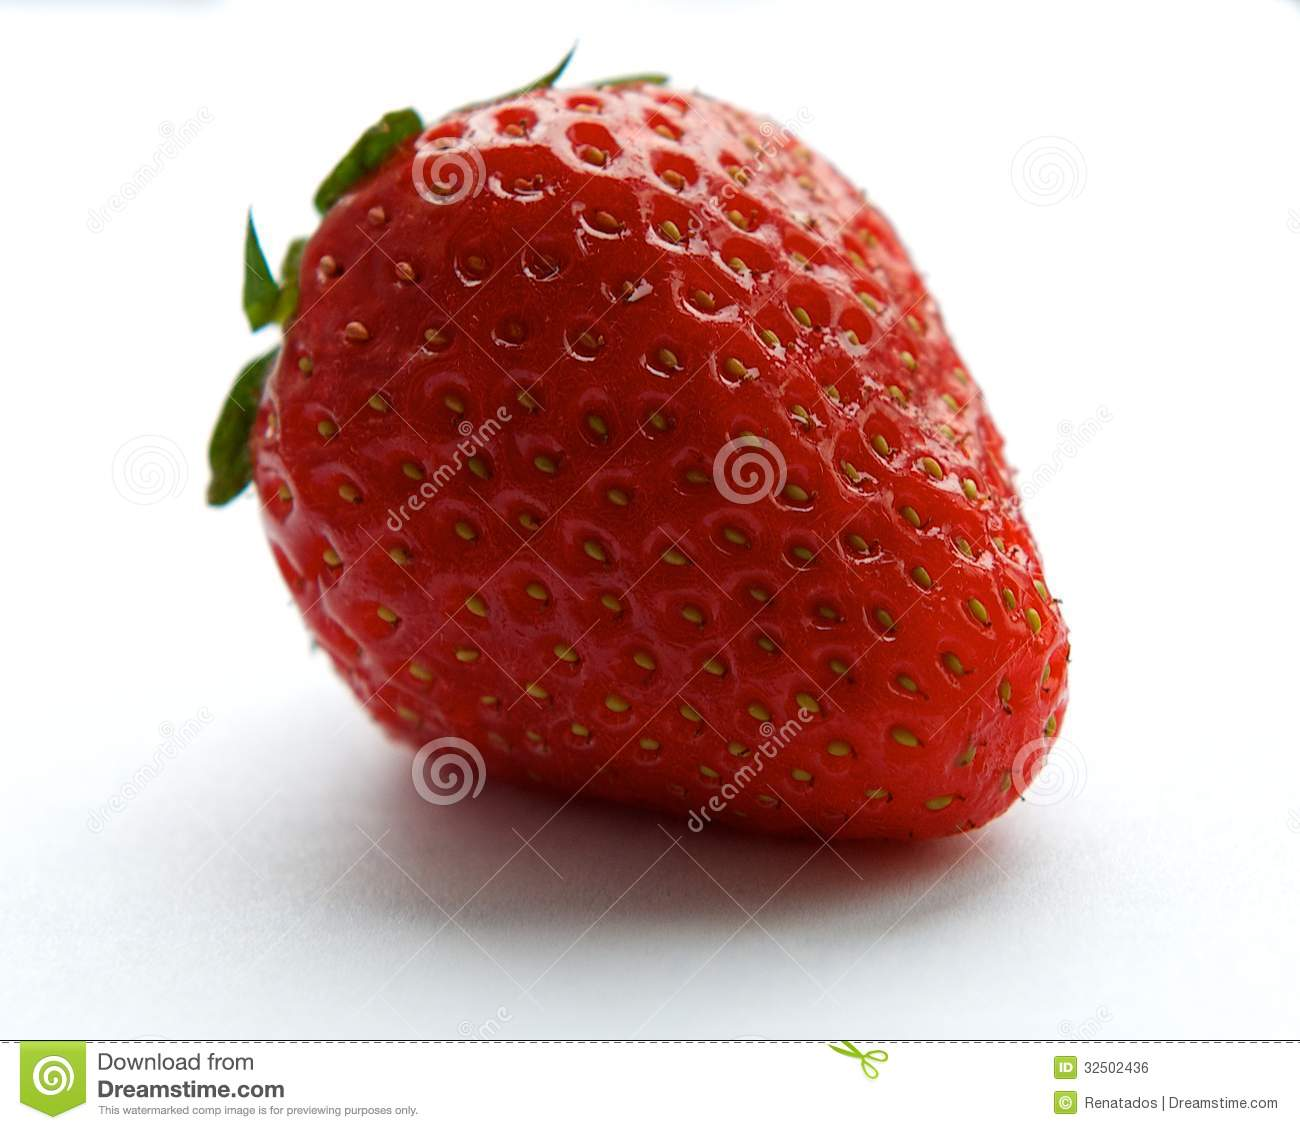 Fresh red one strawberry isolated on white background, fresh fruits, summer berry, red berry, strawberry